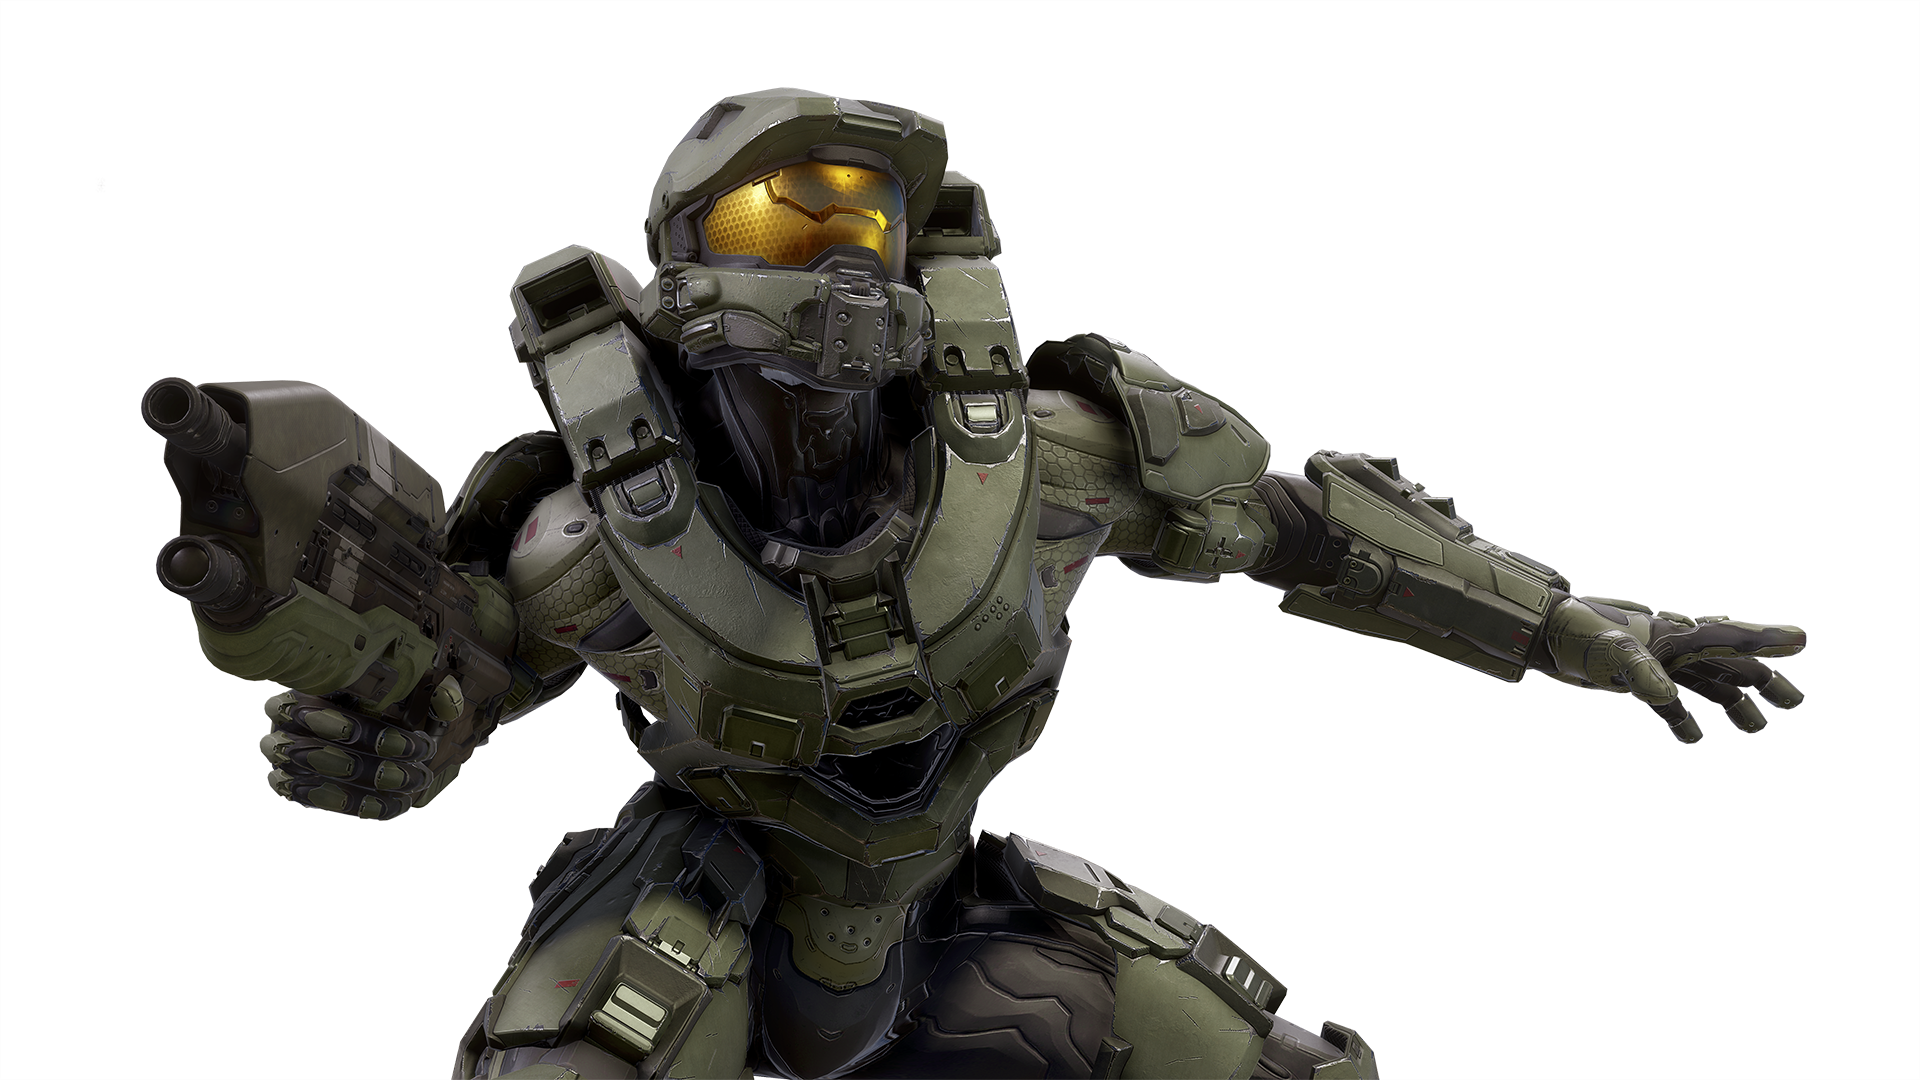 Master chief halo 5 png. Official images character renders